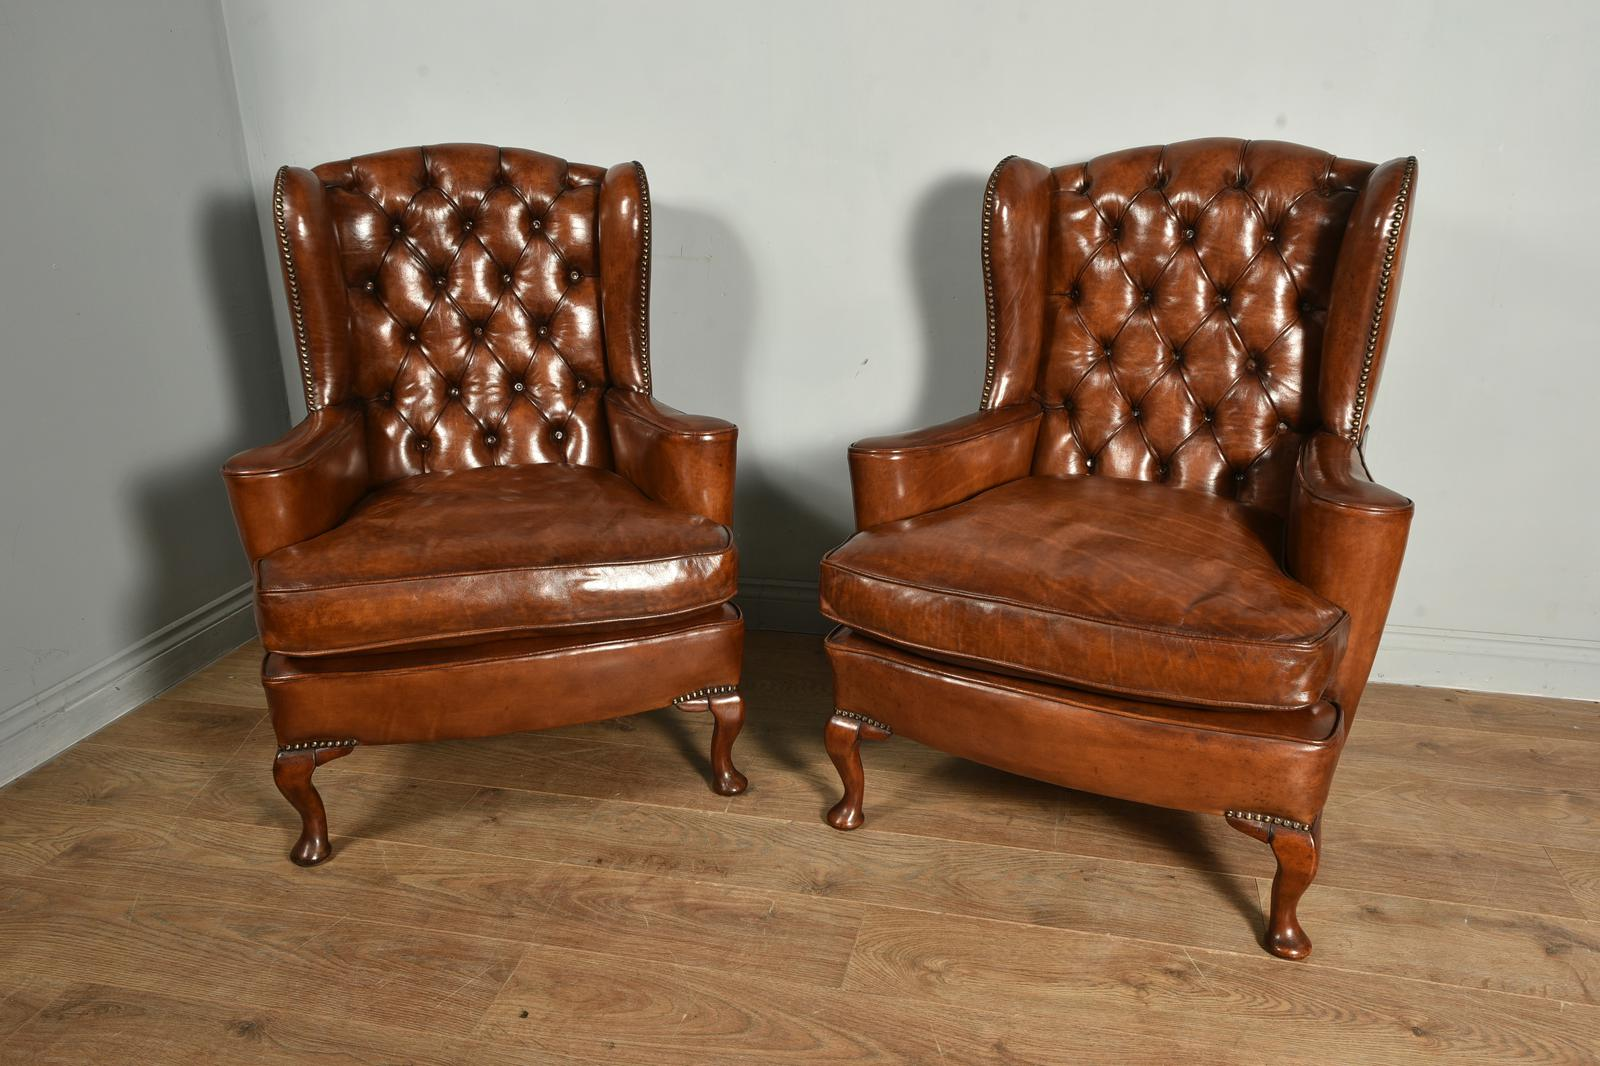 Antique Pair of Leather Chesterfield Wing Chairs (1 of 1)